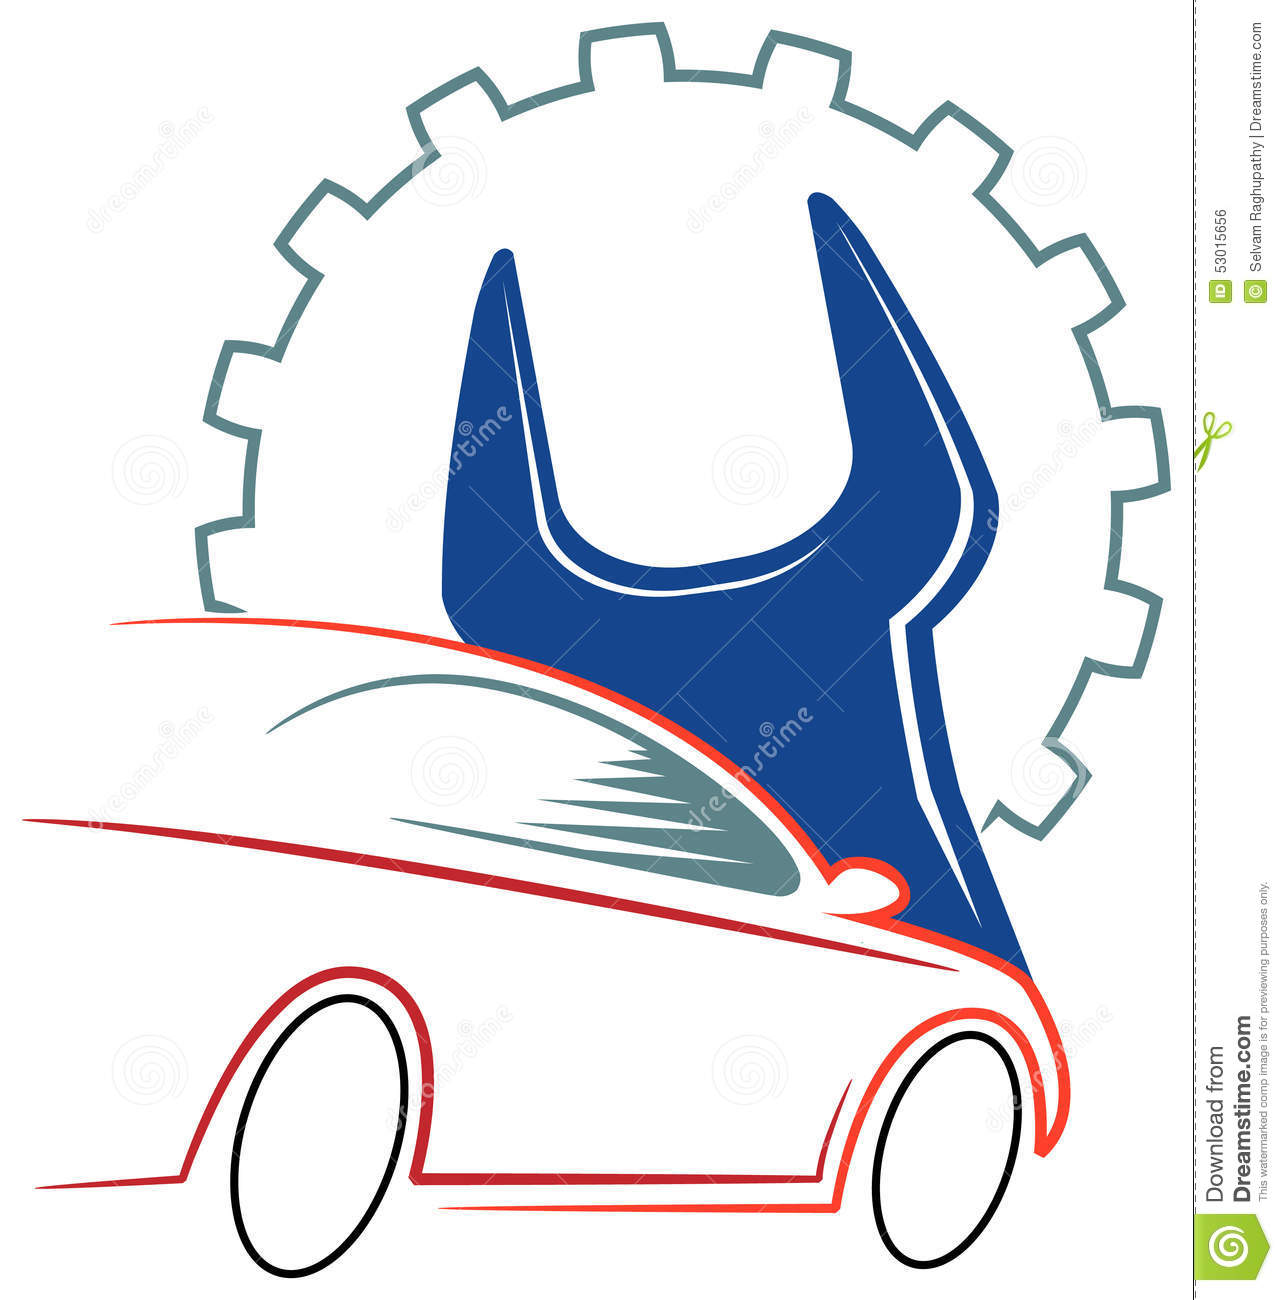 automobile workshop logo stock vector illustration of house 53015656 rh dreamstime com Free Logo Artwork Create Free Business Logo